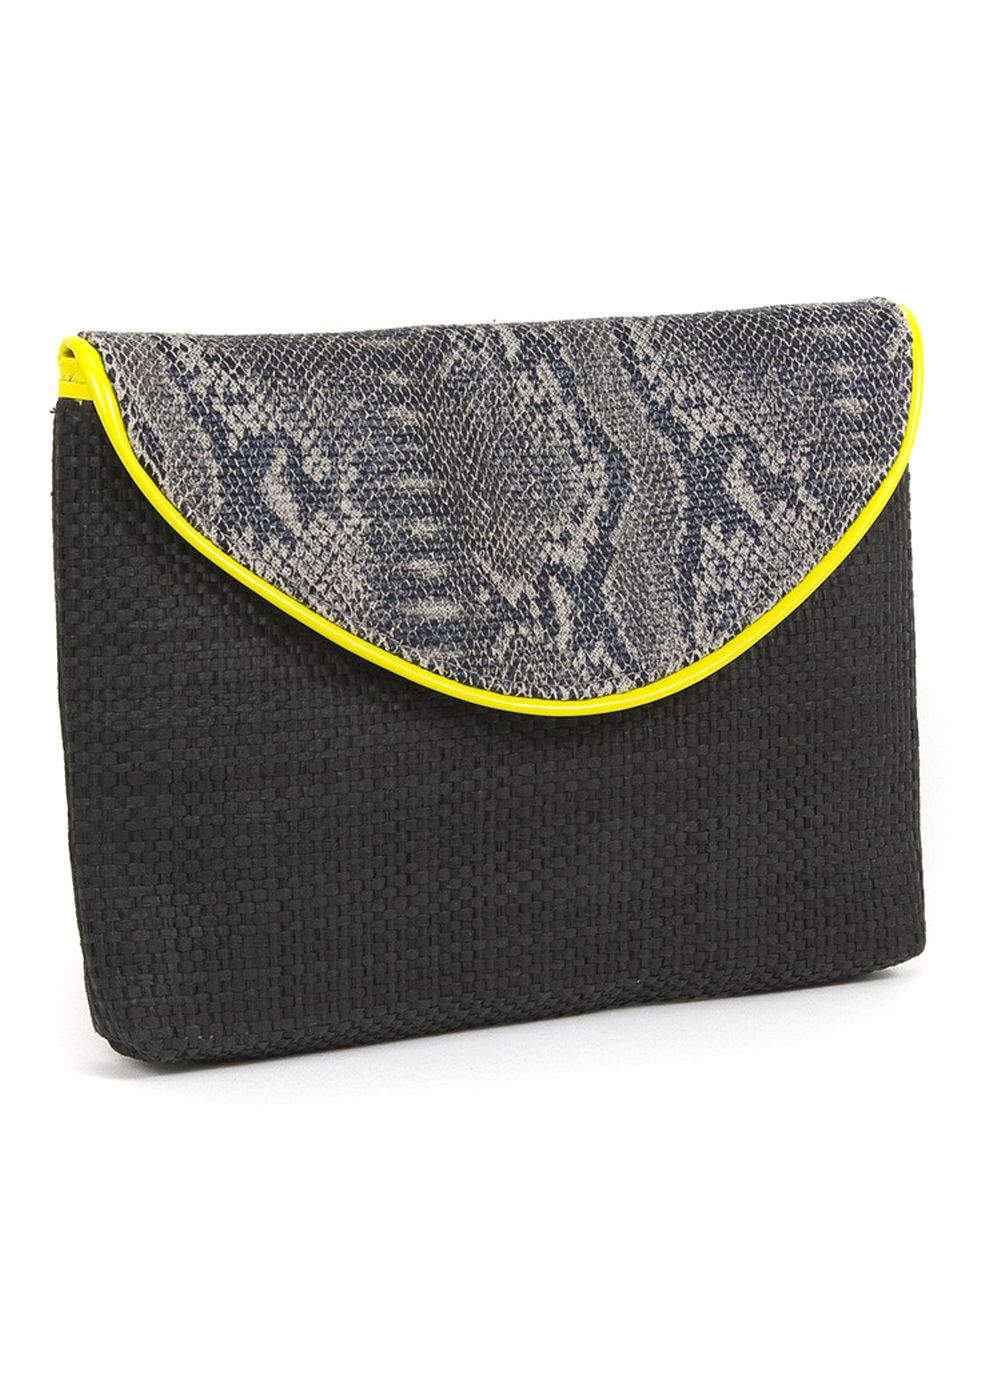 Trendy Bags by Magid - Paper Straw   Faux Snake Skin Canvas Clutch -Black Yellow 2dec477b4f